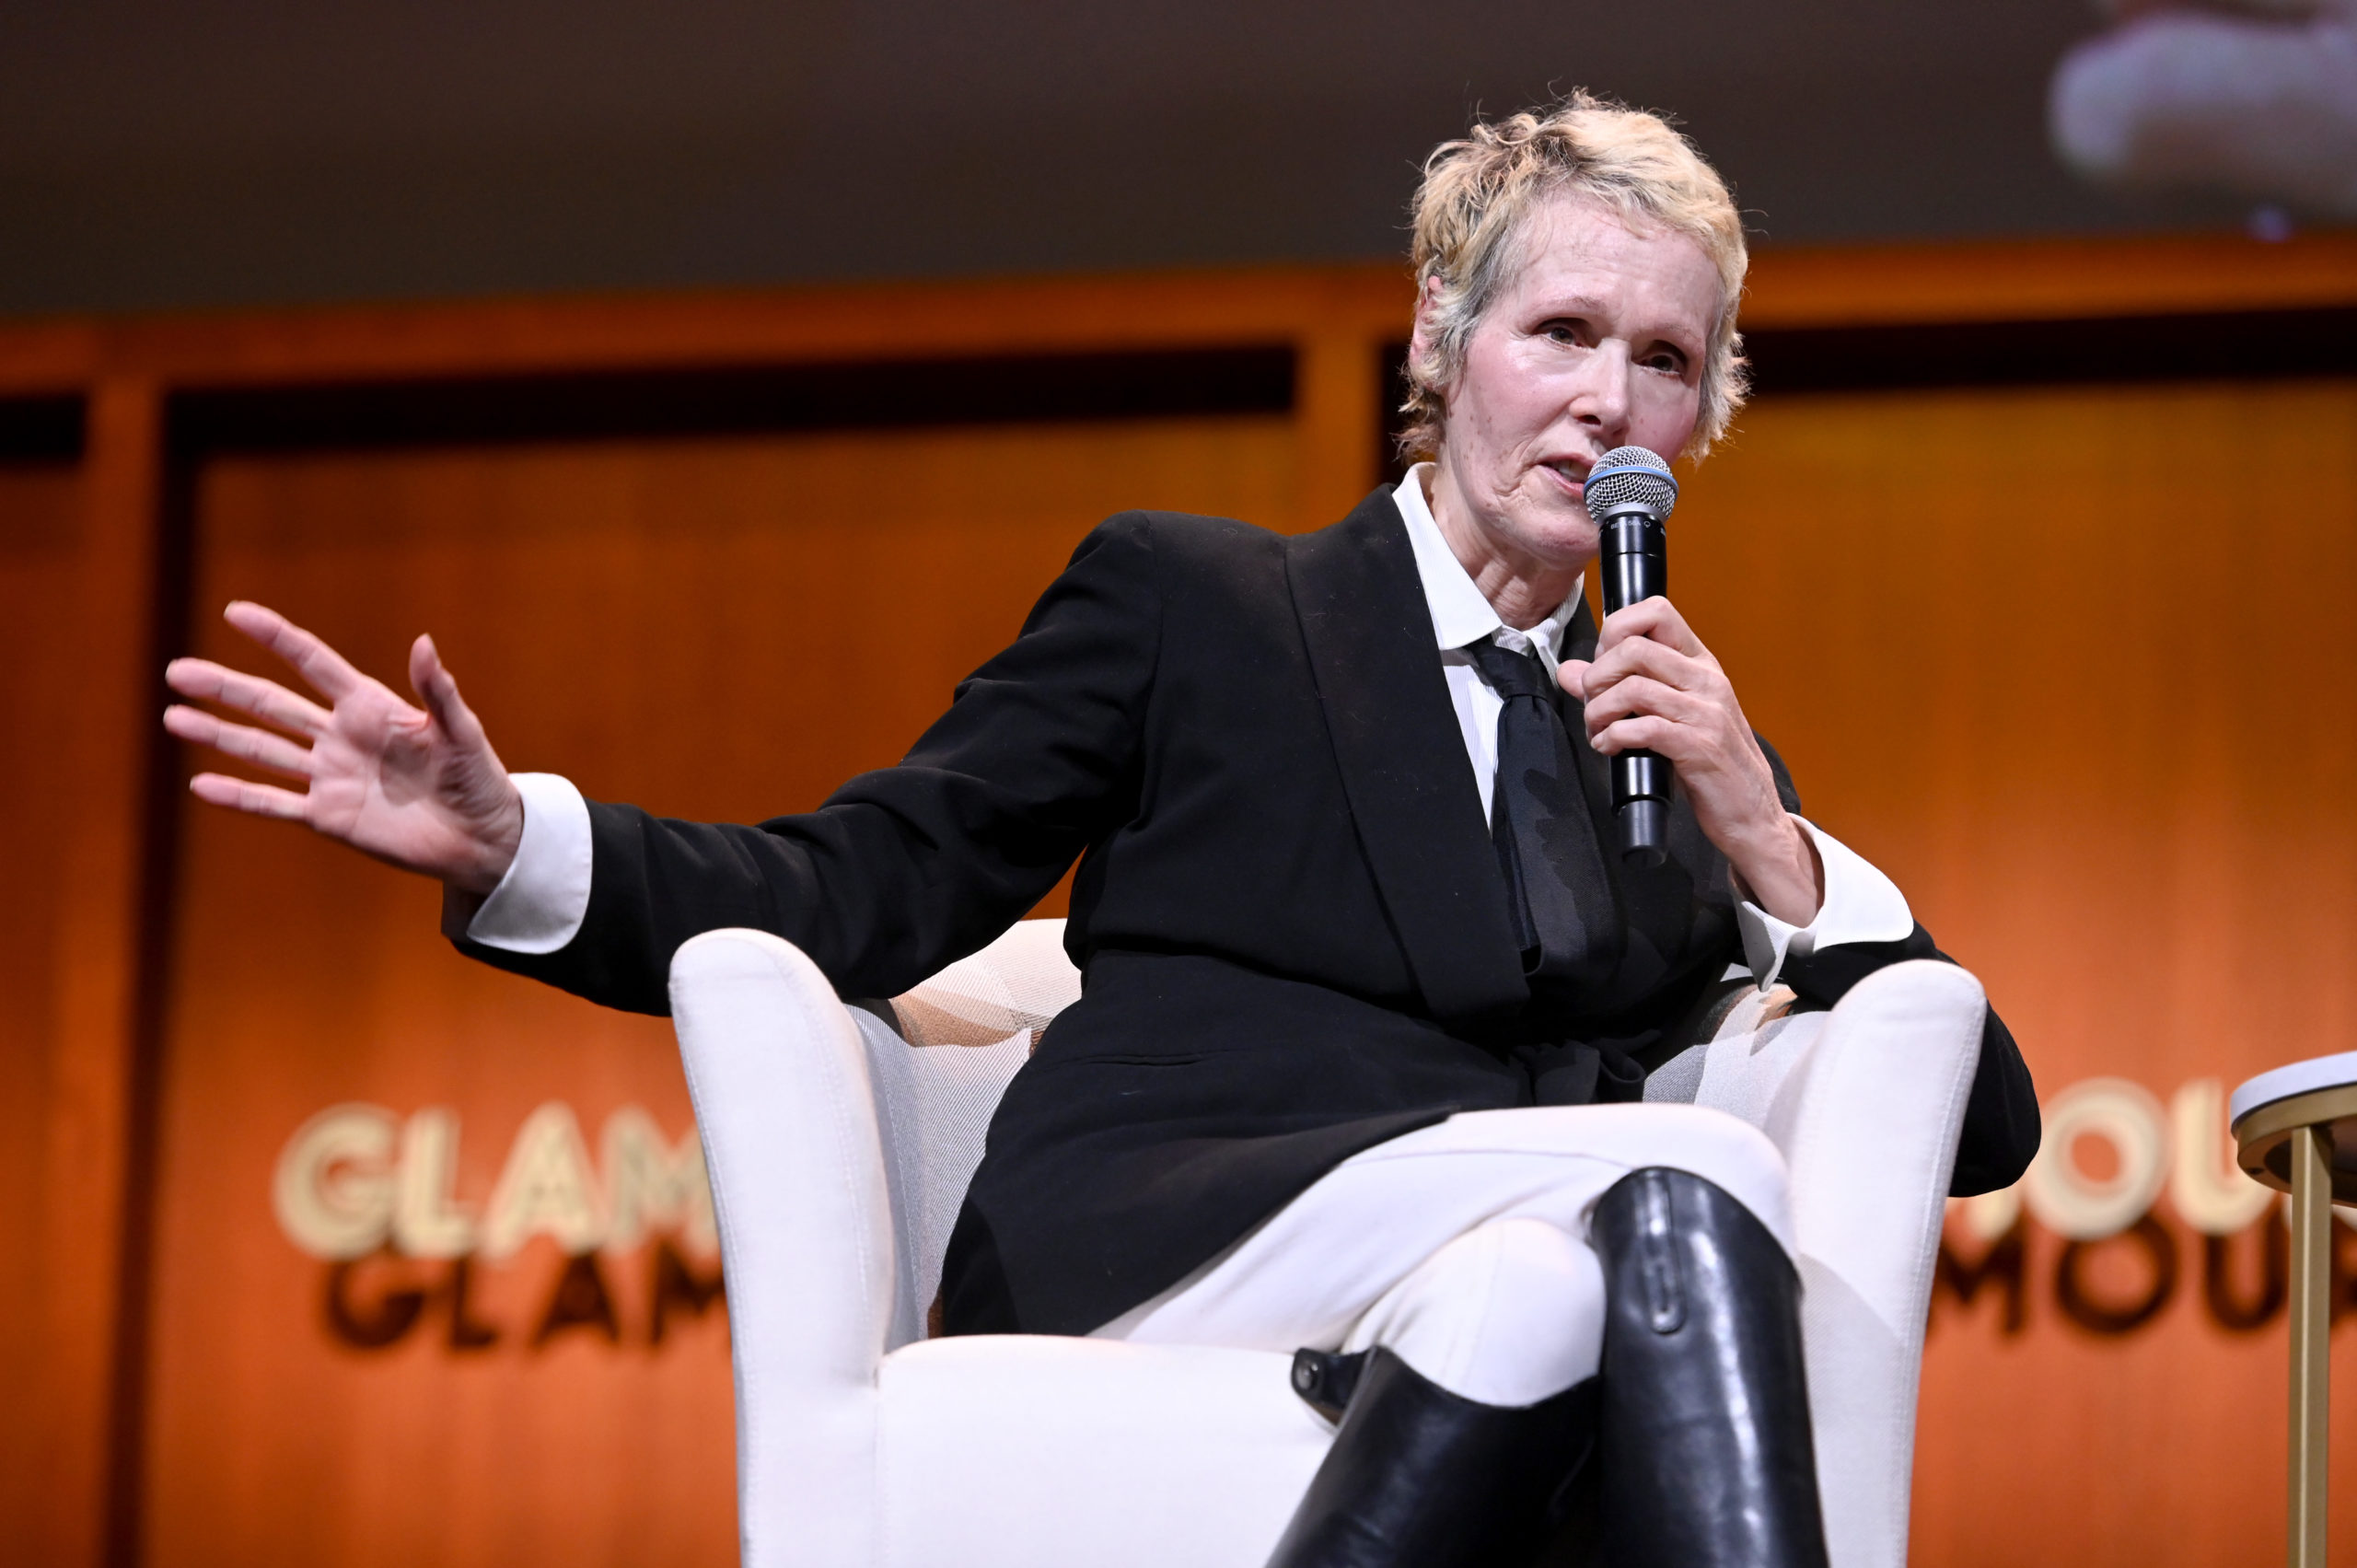 E. Jean Carroll speaks onstage during the How to Write Your Own Life panel at the 2019 Glamour Women Of The Year Summit at Alice Tully Hall on November 10, 2019 in New York City. (Ilya S. Savenok/Getty Images for Glamour)